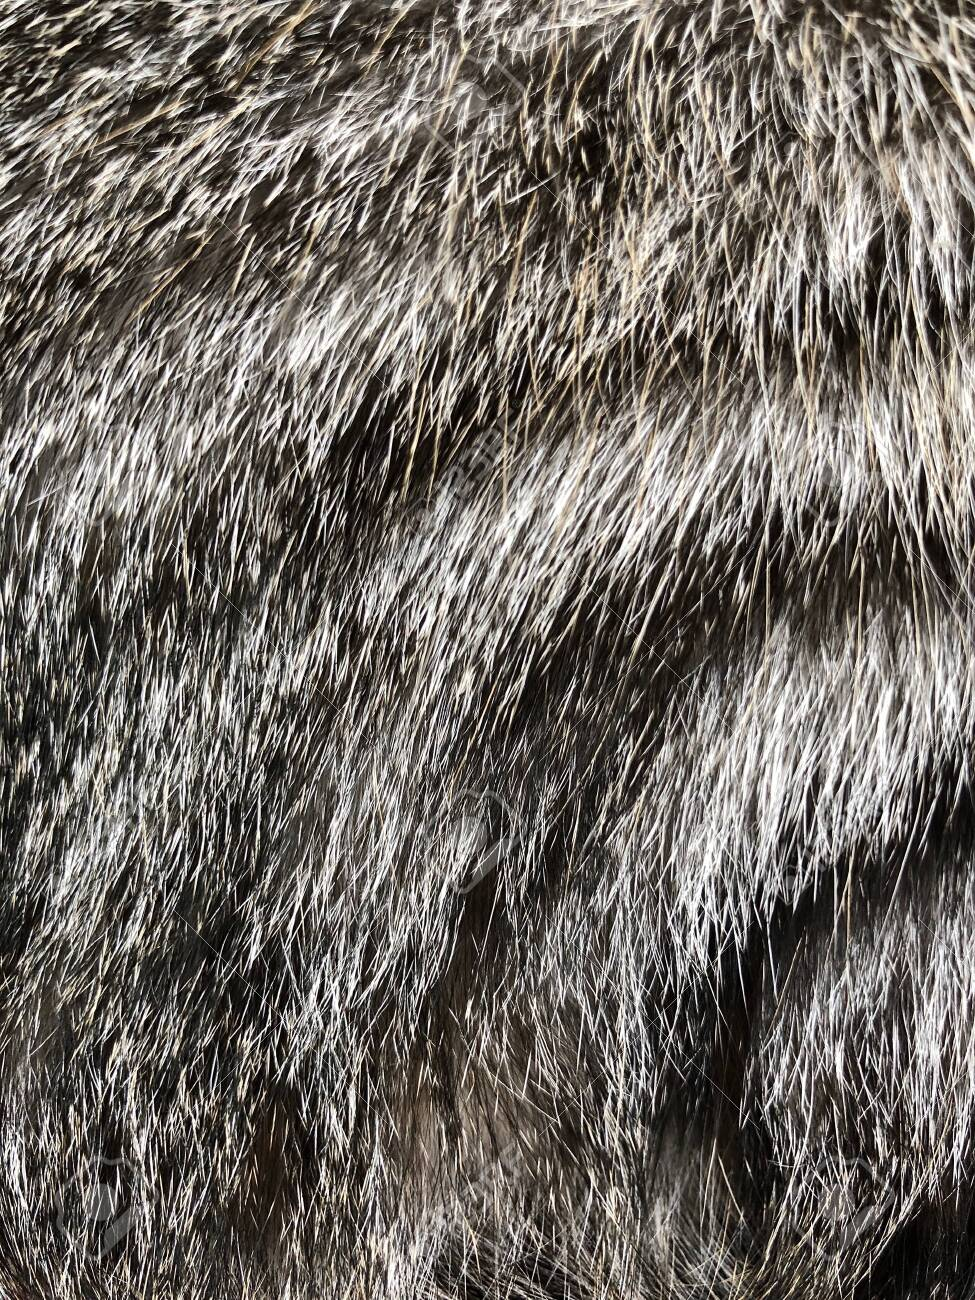 Cat hair background texture - 149313357